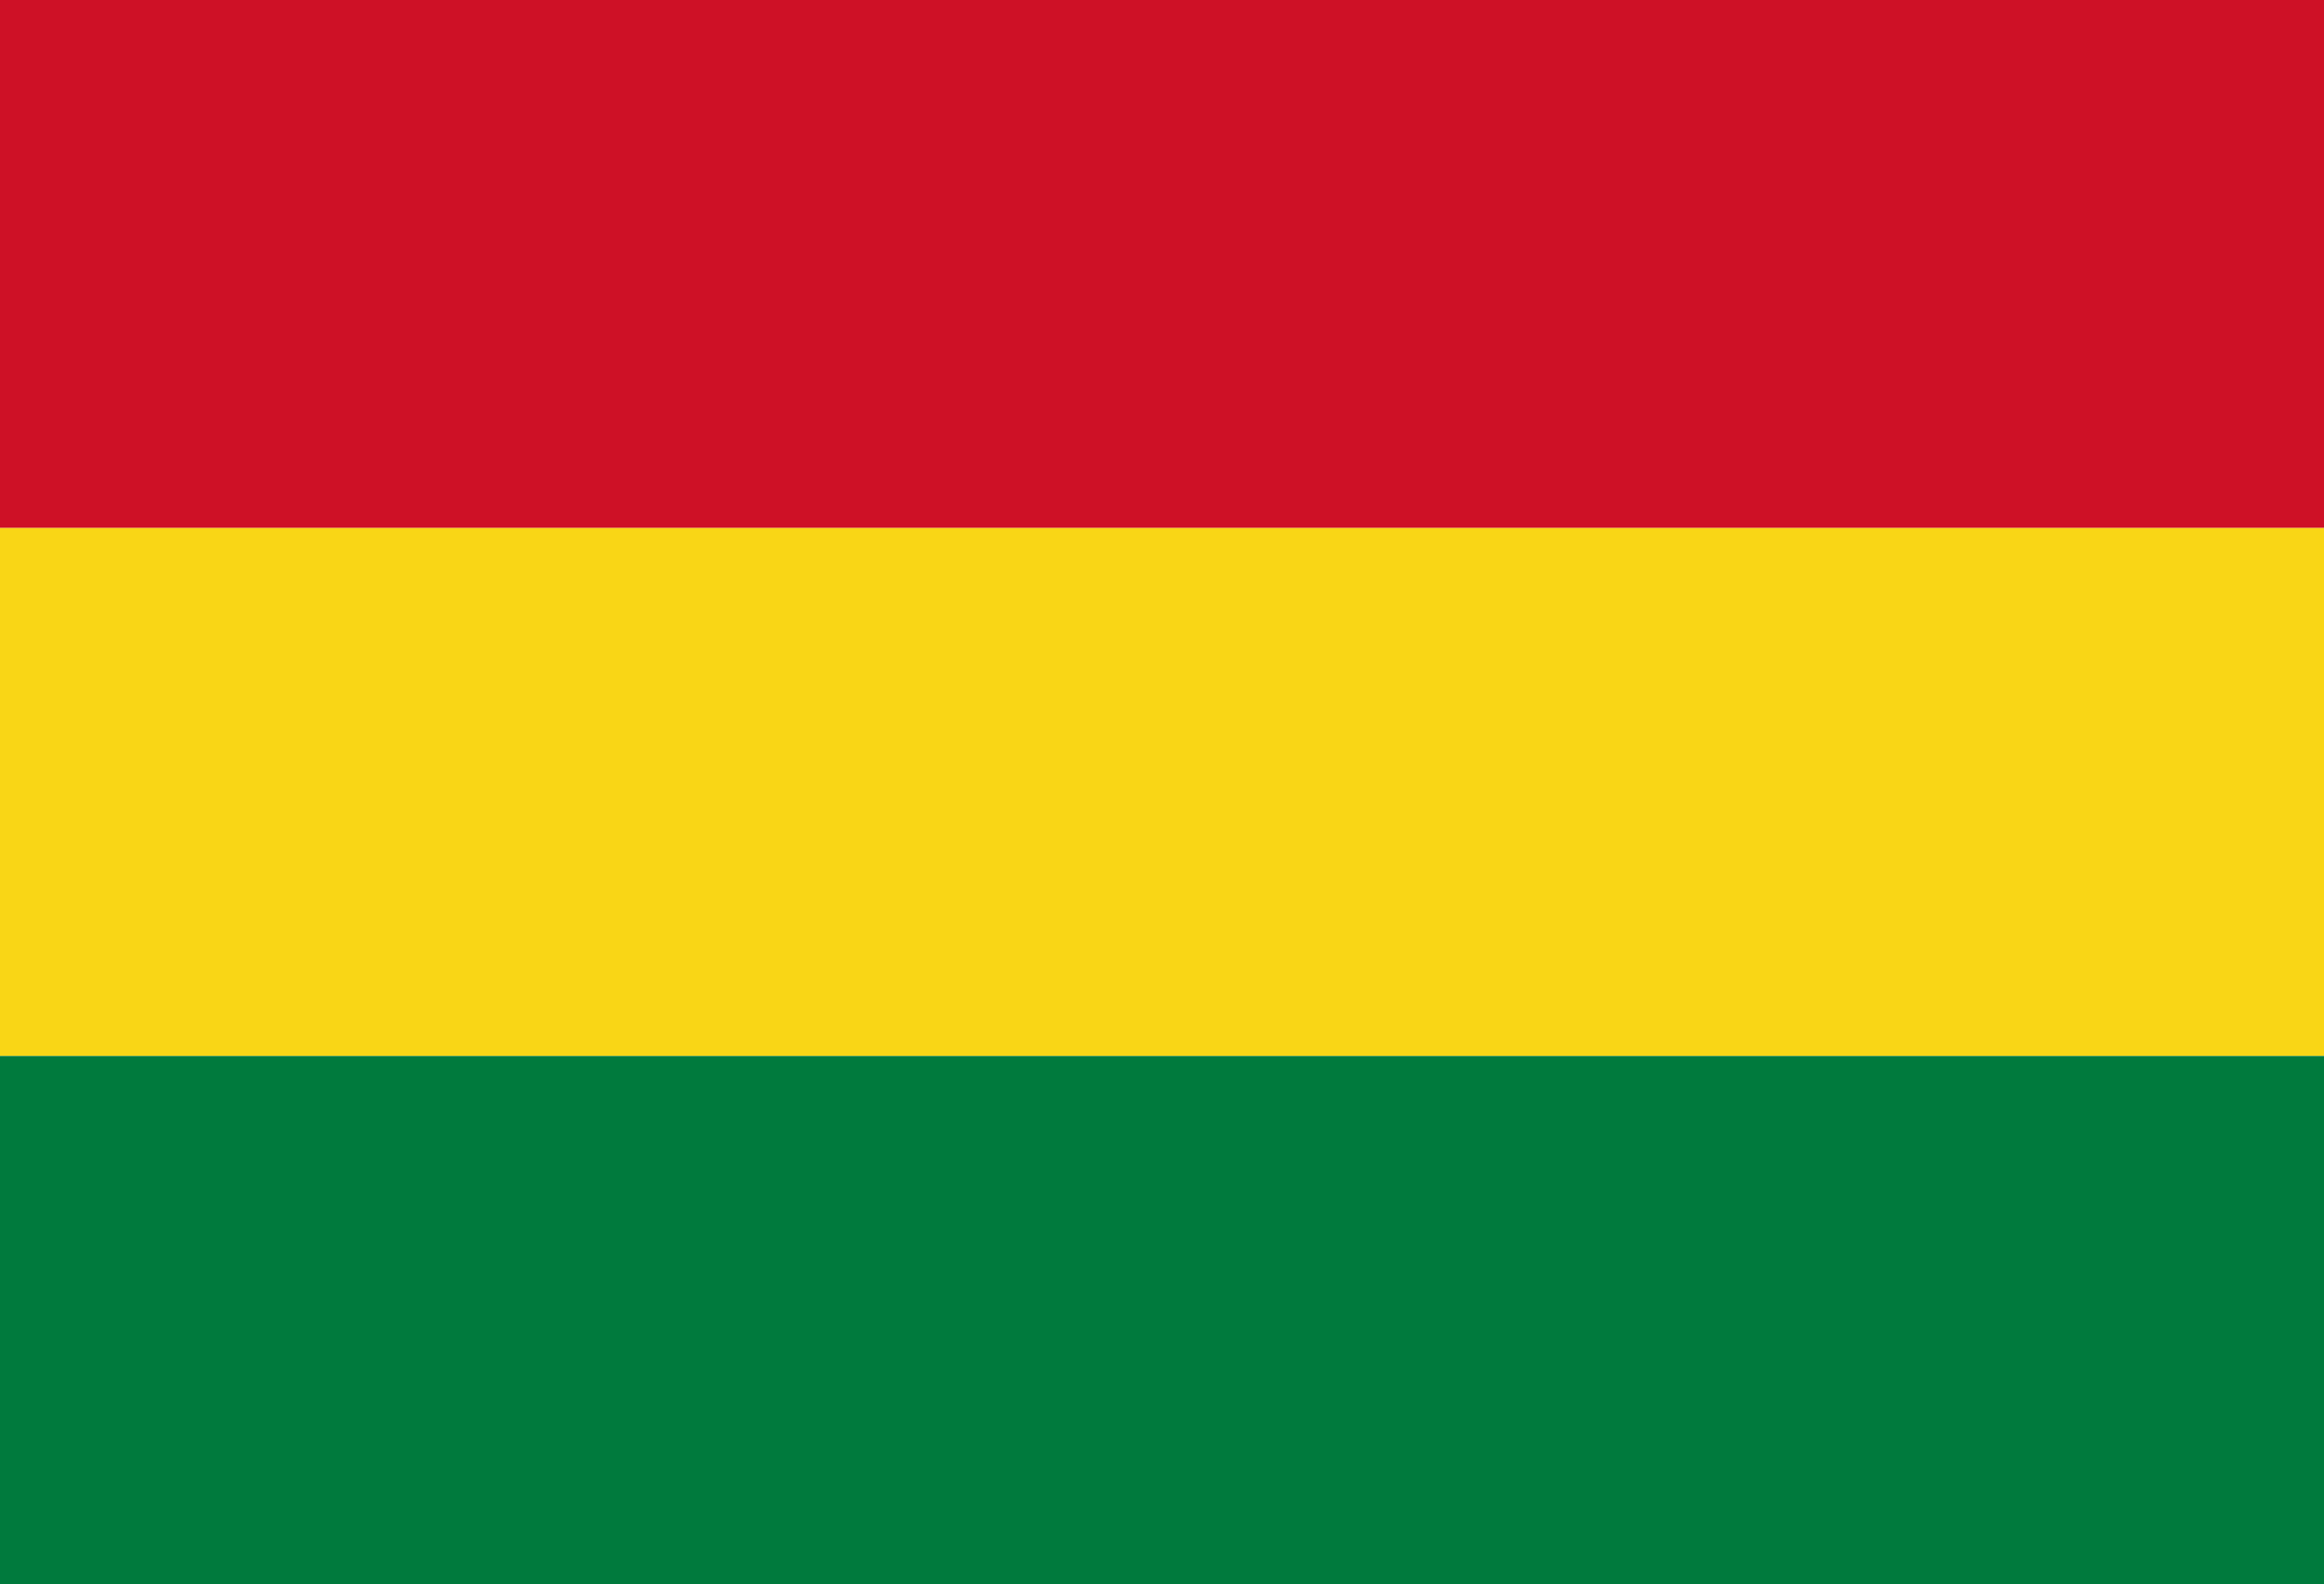 Download a flag or use it on websites - Bolivia PNG